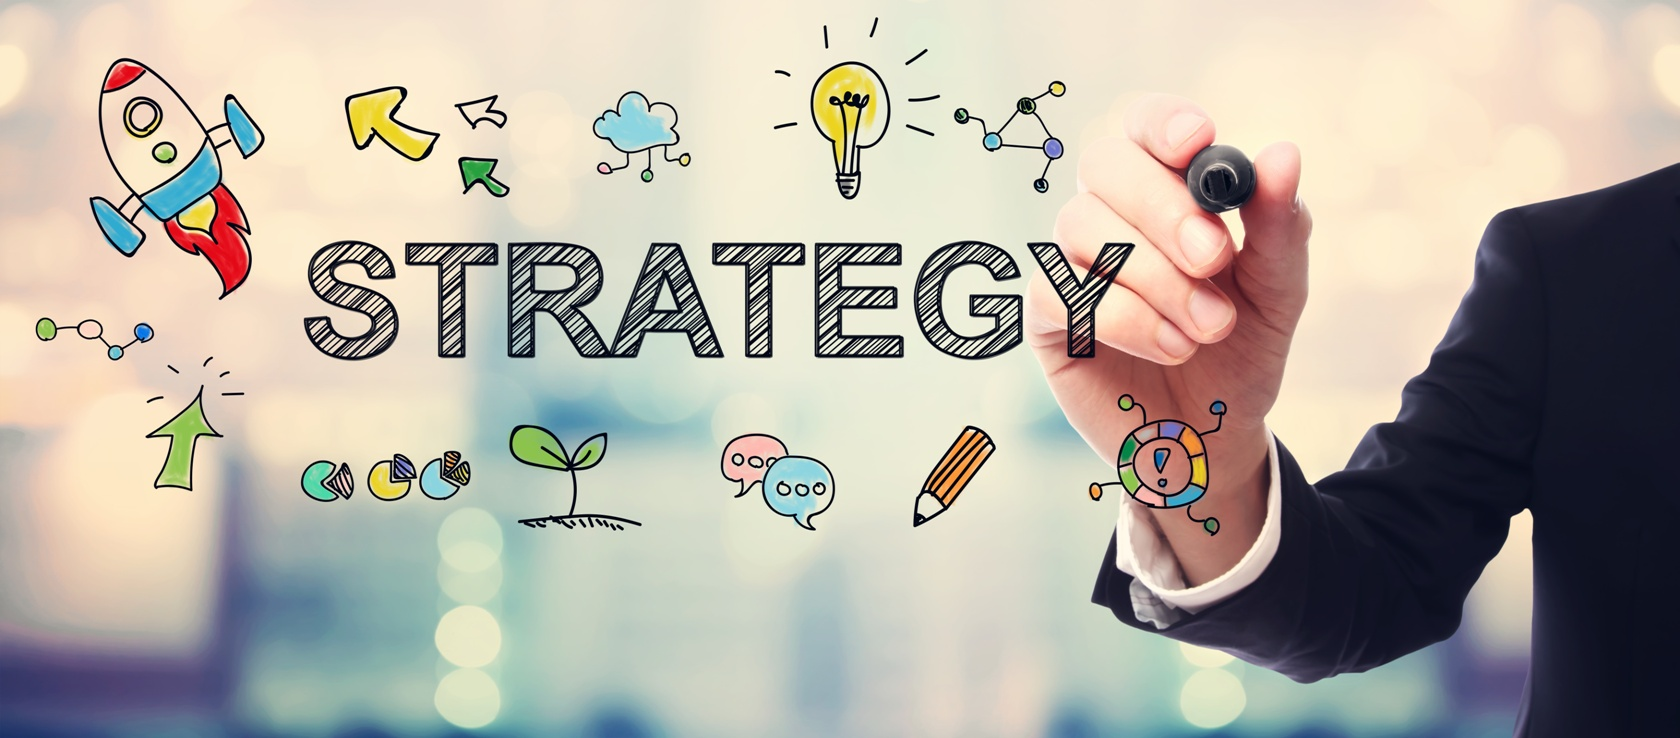 case1 web advertising strategy helps p Here are the top 10 internet marketing strategies to help you attract more people to your we don't often think about web design as a marketing tactic.